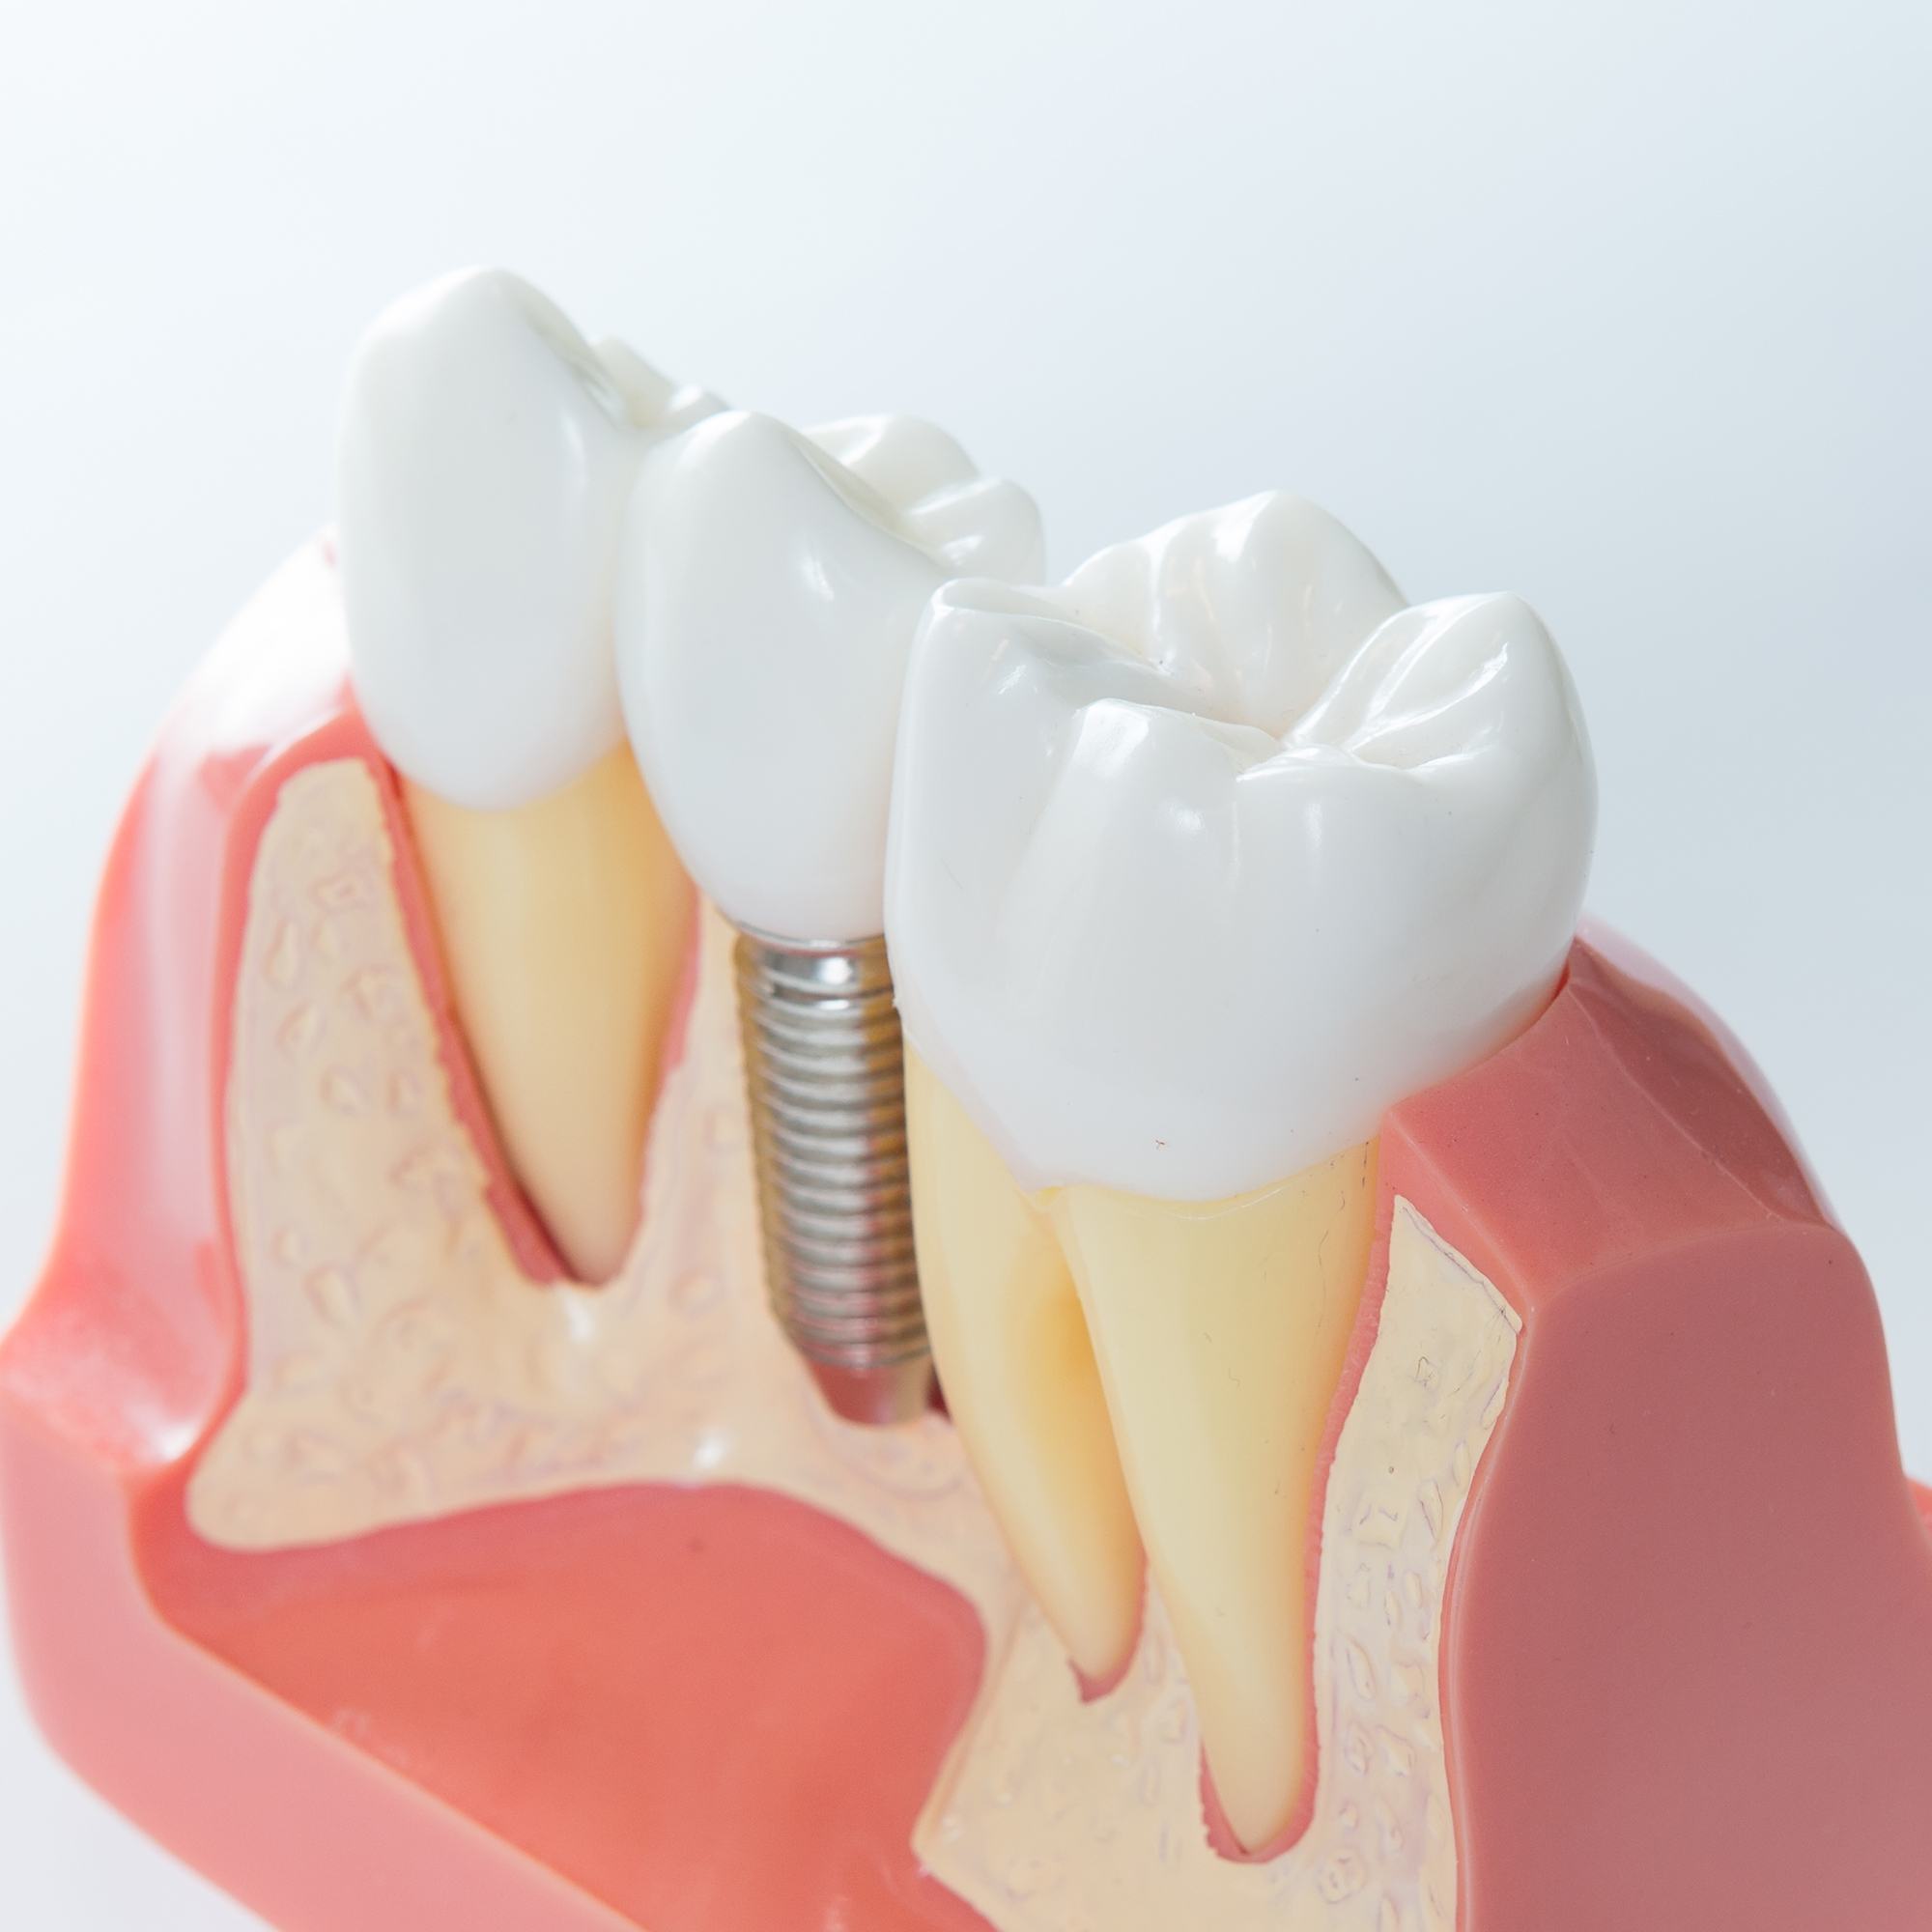 Close up of dental implant model showing the crown attached to the post, along with the surrounding natural teeth